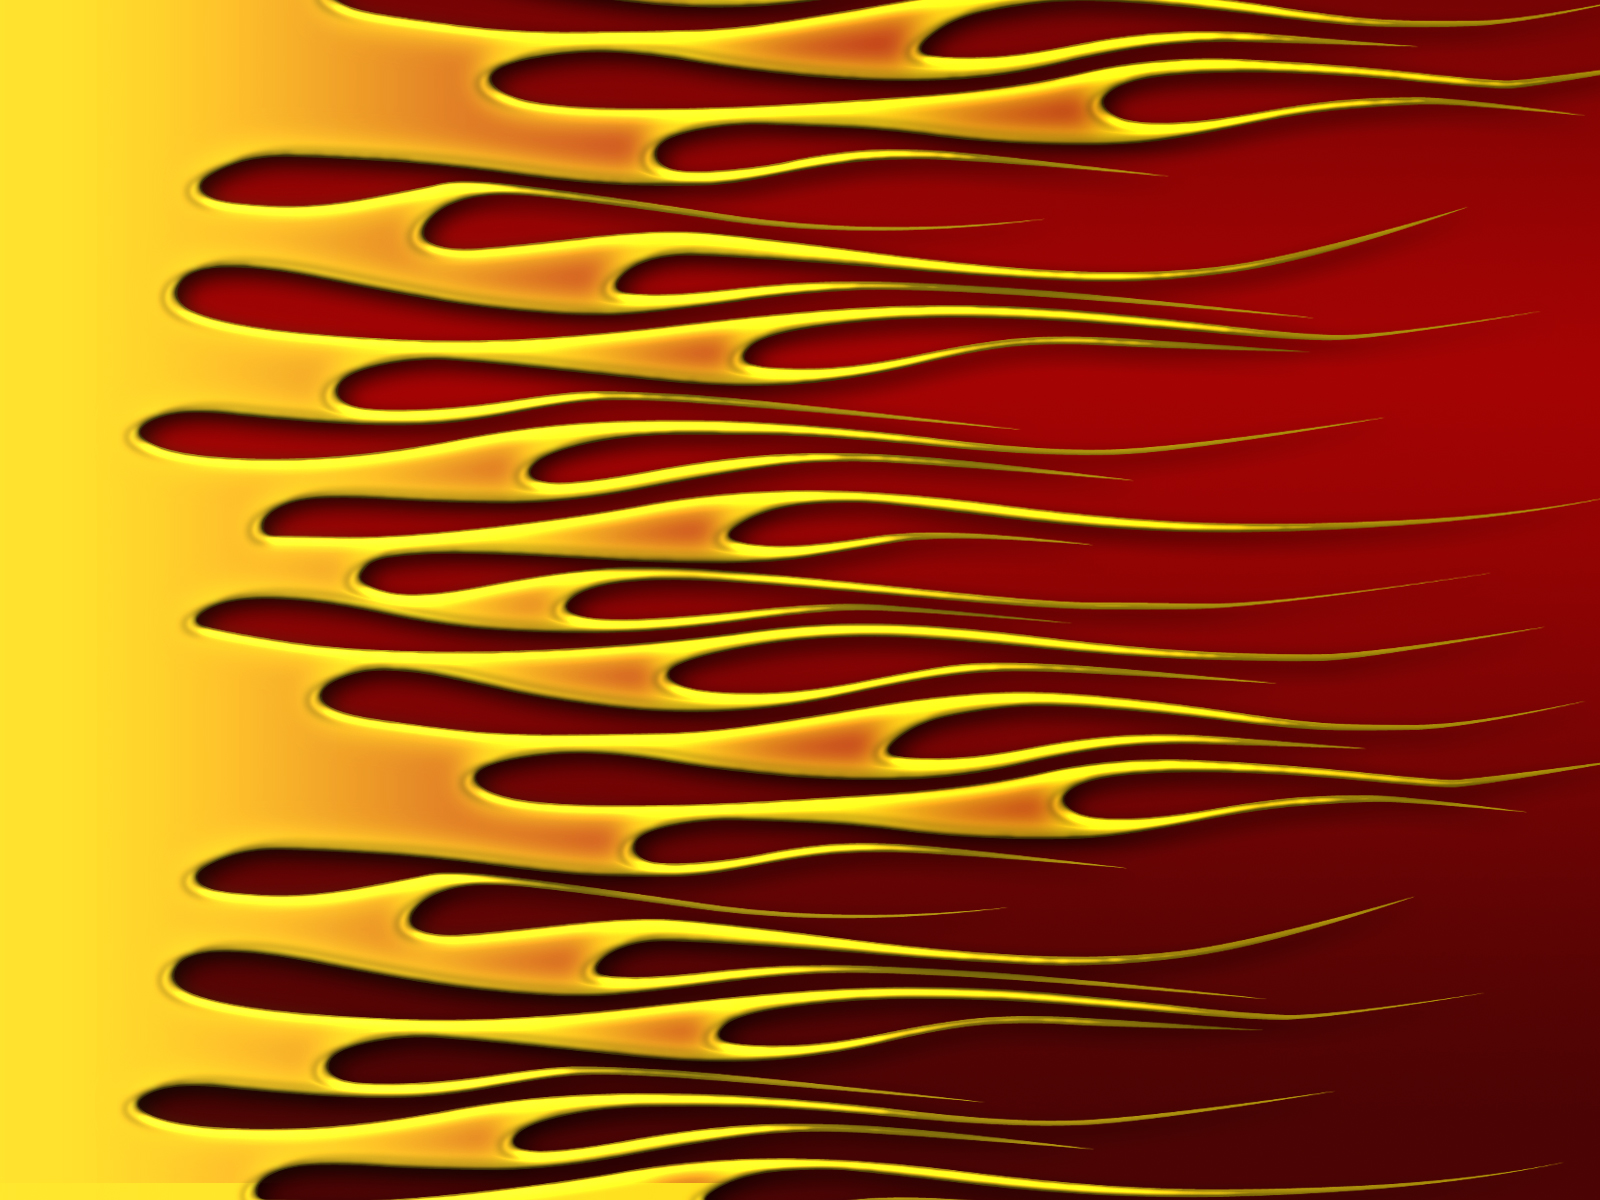 Flames   Gold on Red by jbensch 1600x1200